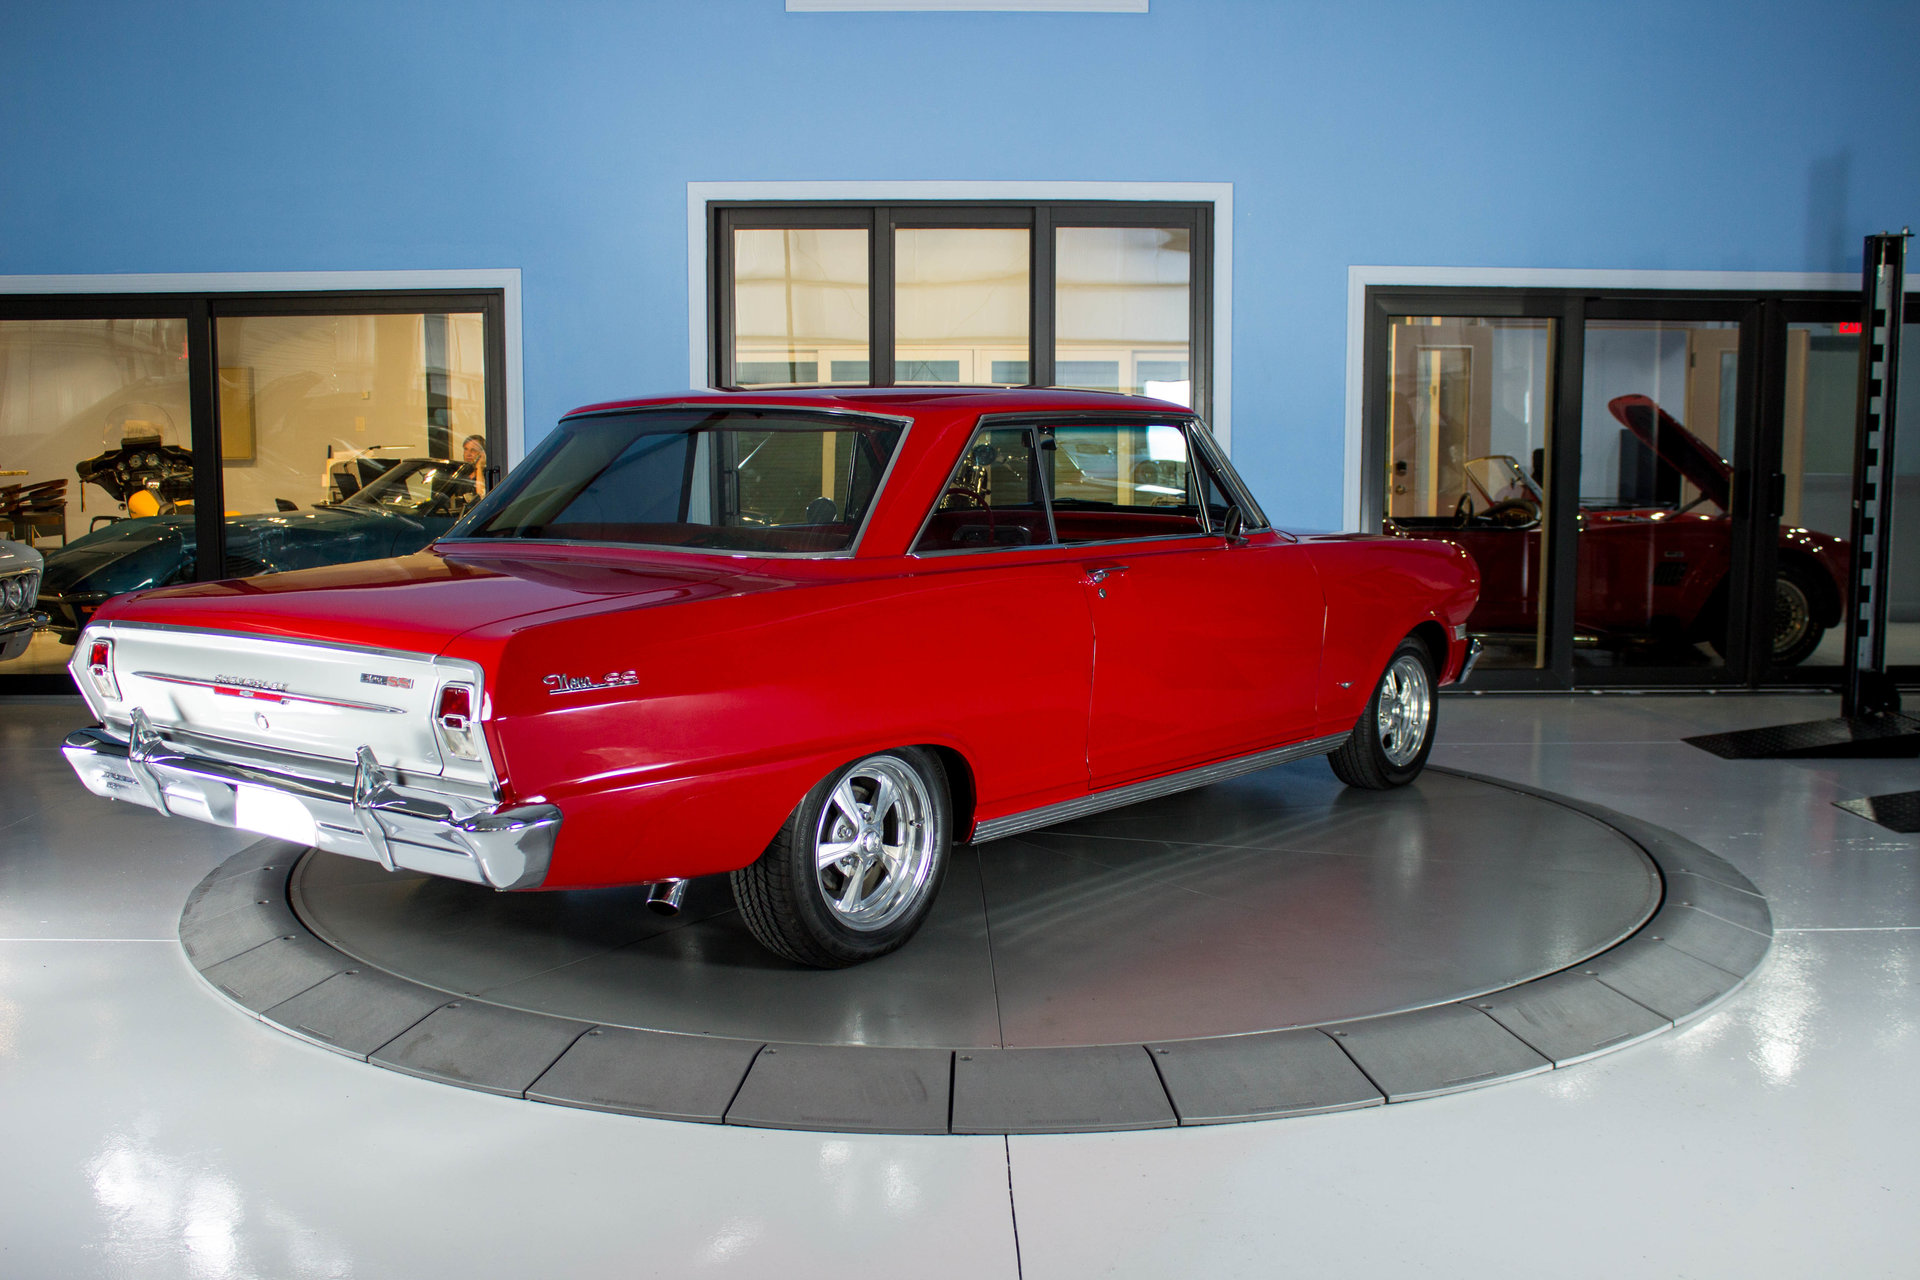 1963 Chevrolet Nova Ss Classic Cars Amp Used Cars For Sale